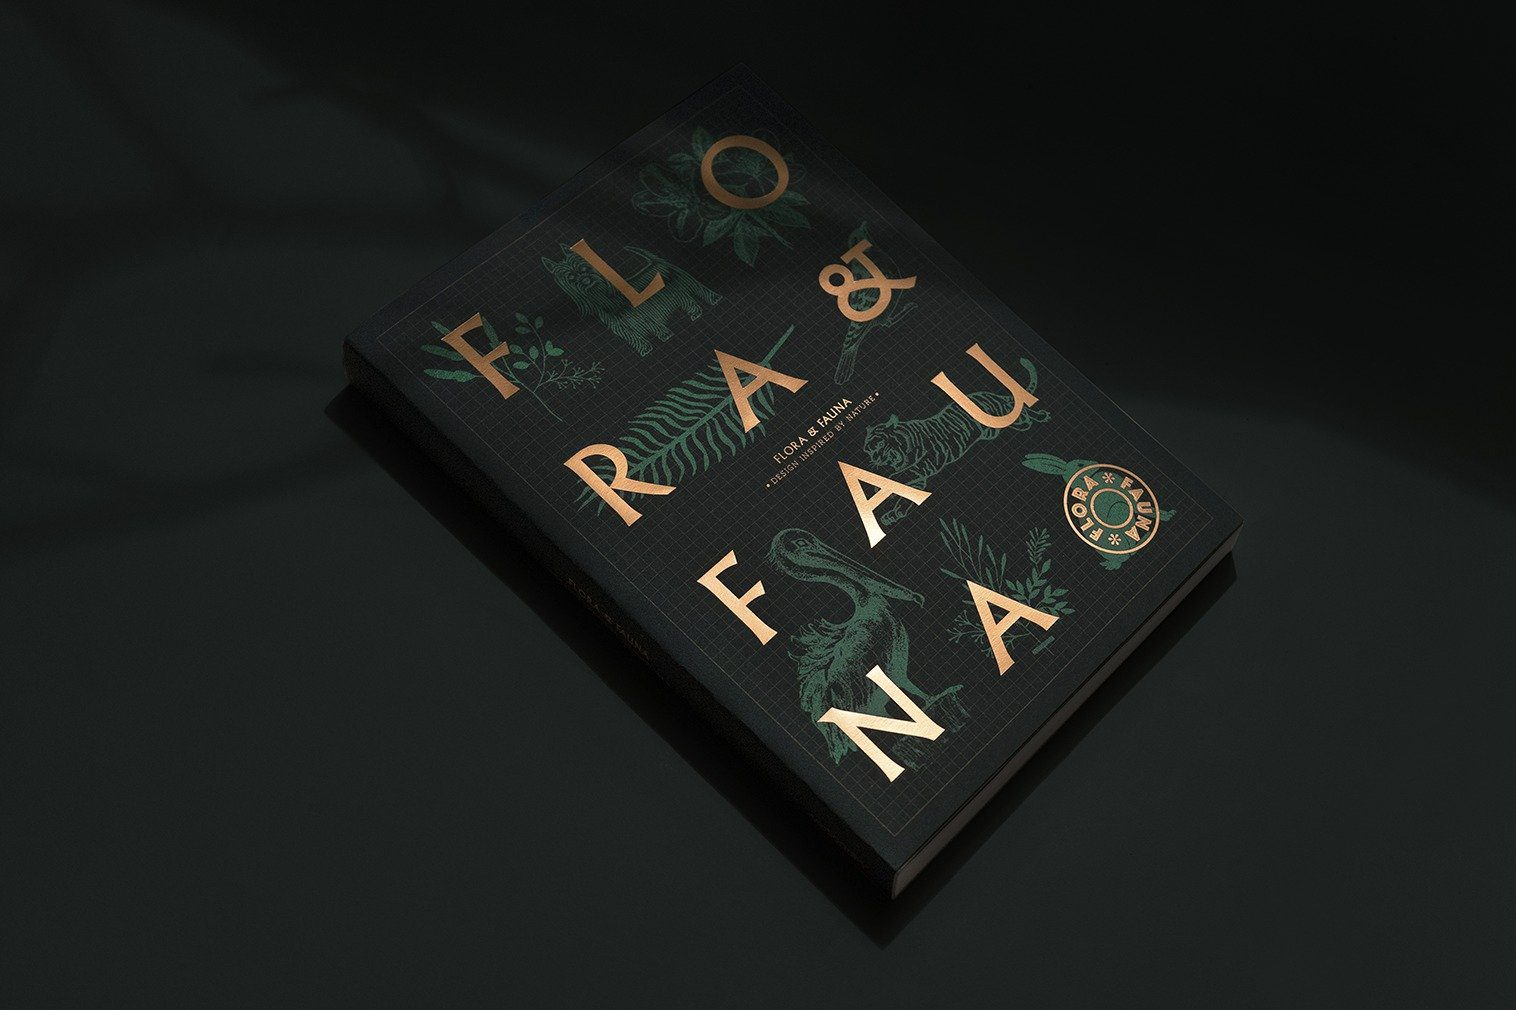 11Flora Fauna Published by Victionary